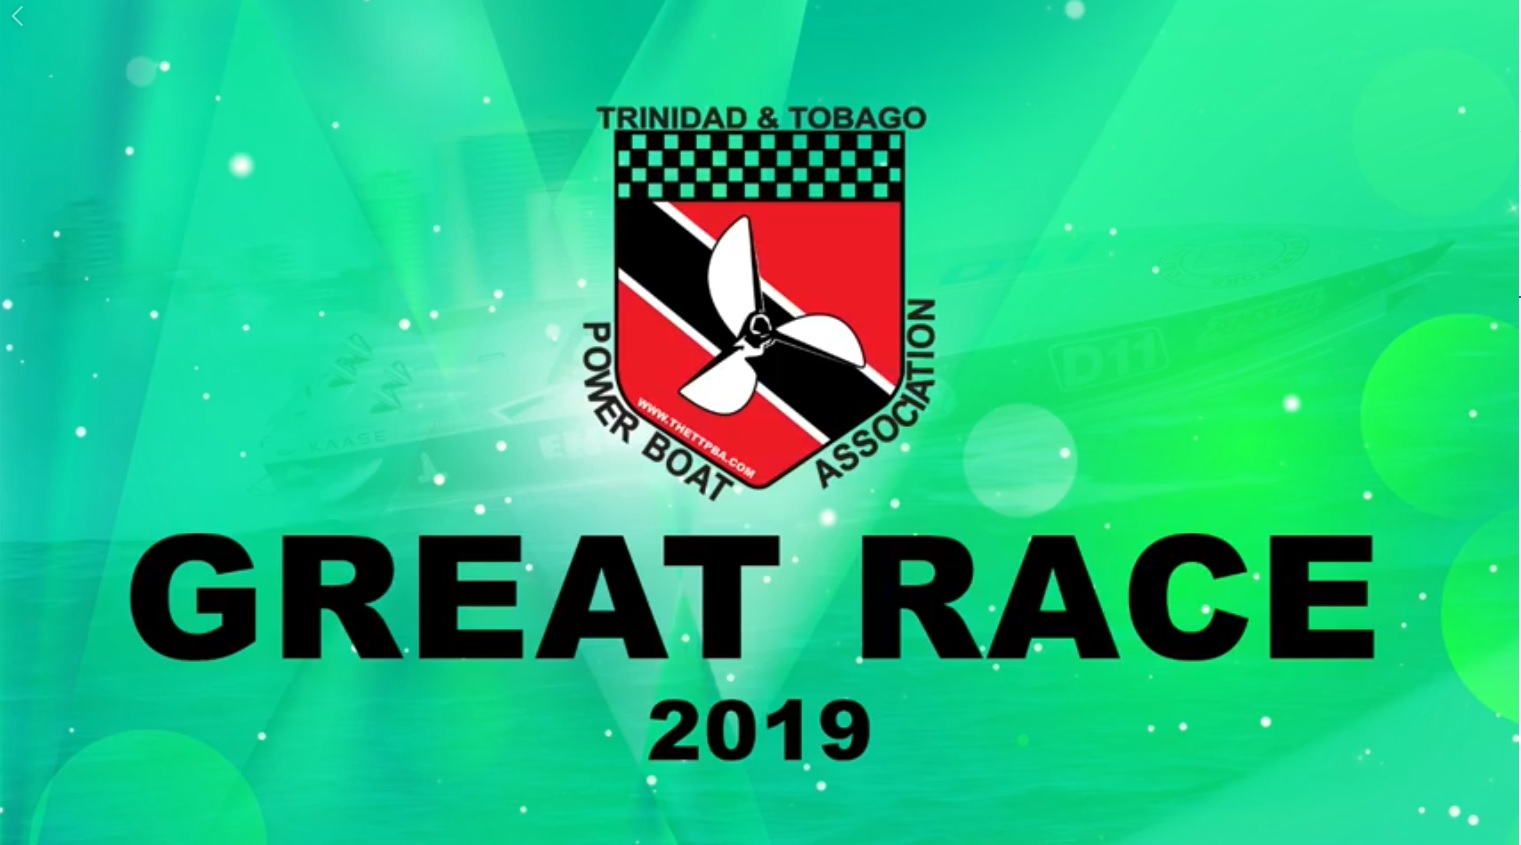 Trinidad and Tobago Great Race 2019